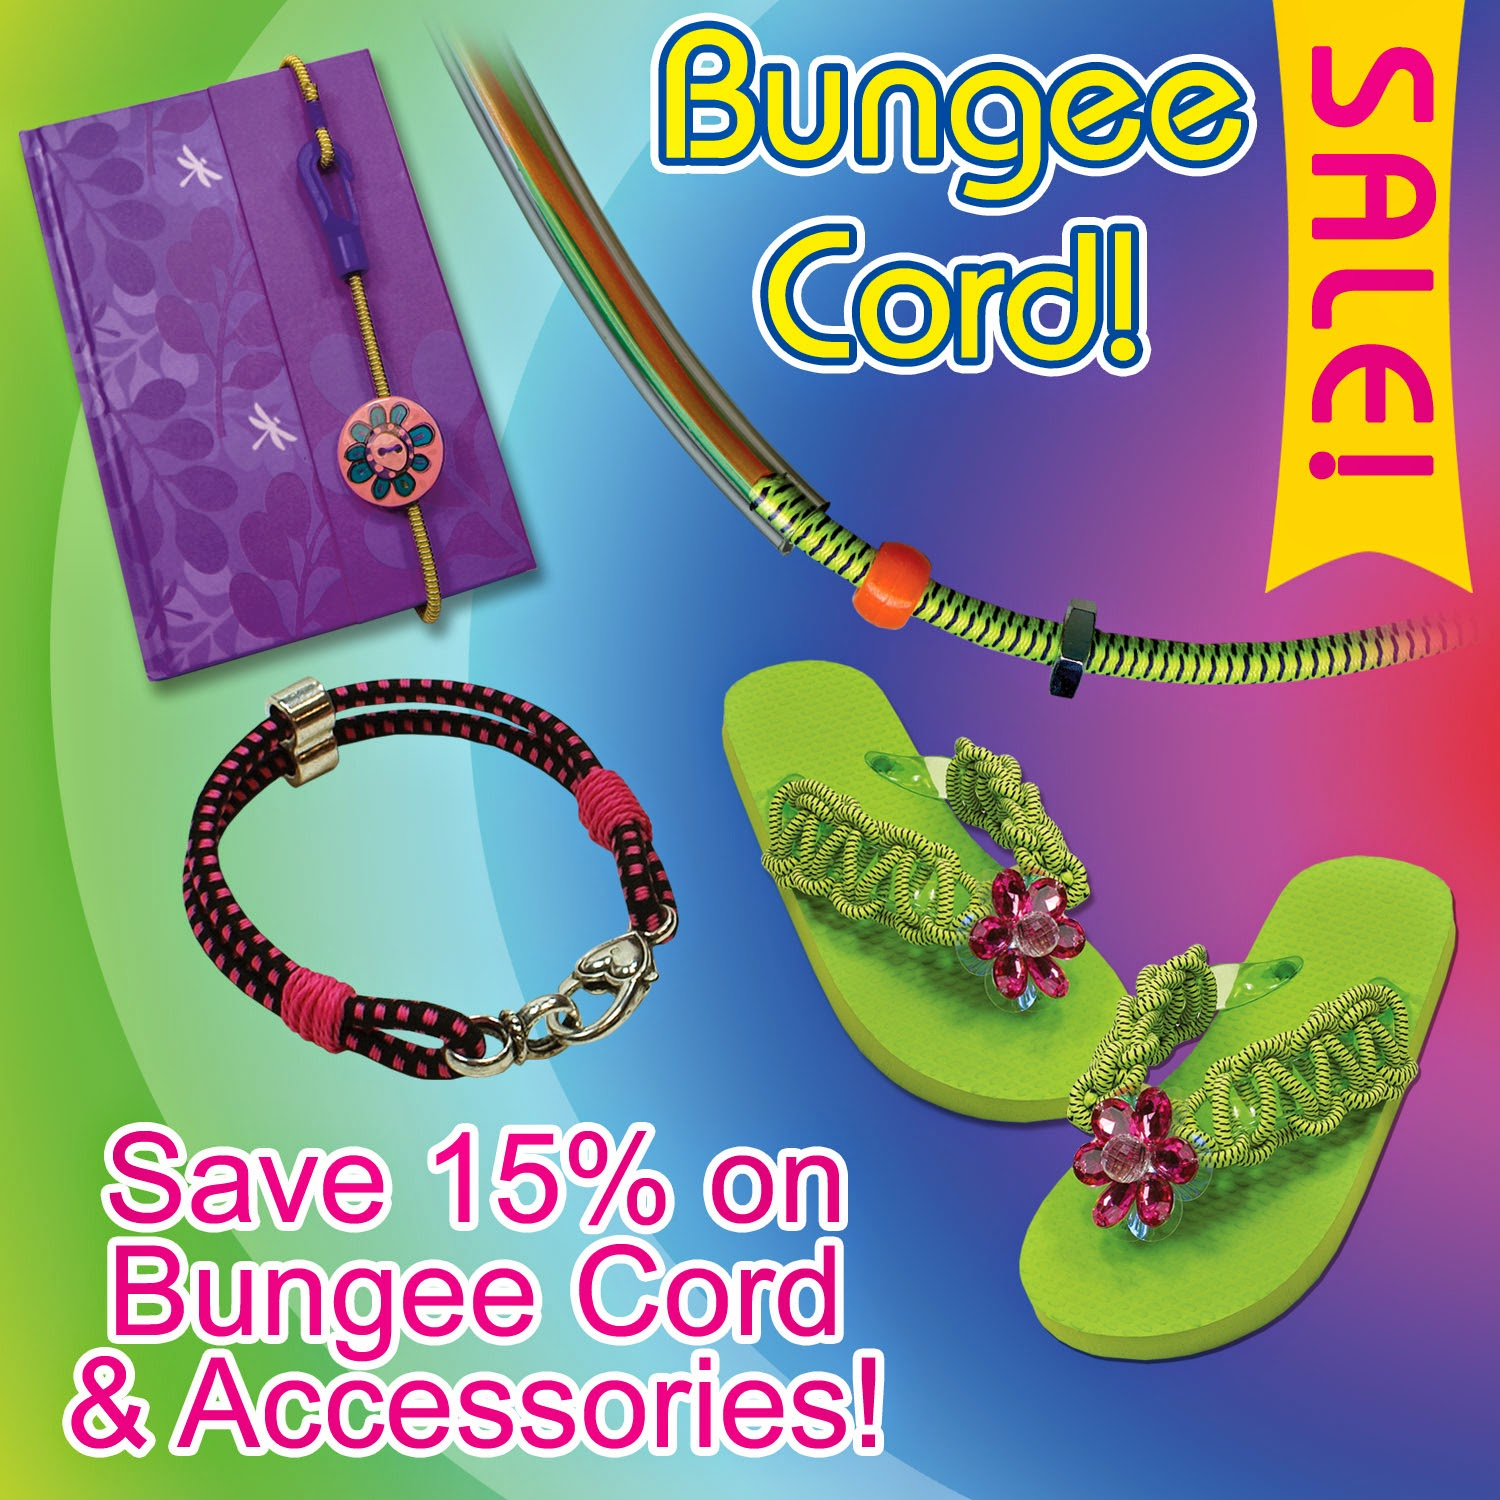 Bungee sale through Aug. 31 2014 - Rexlace Club and Macrame Super Store